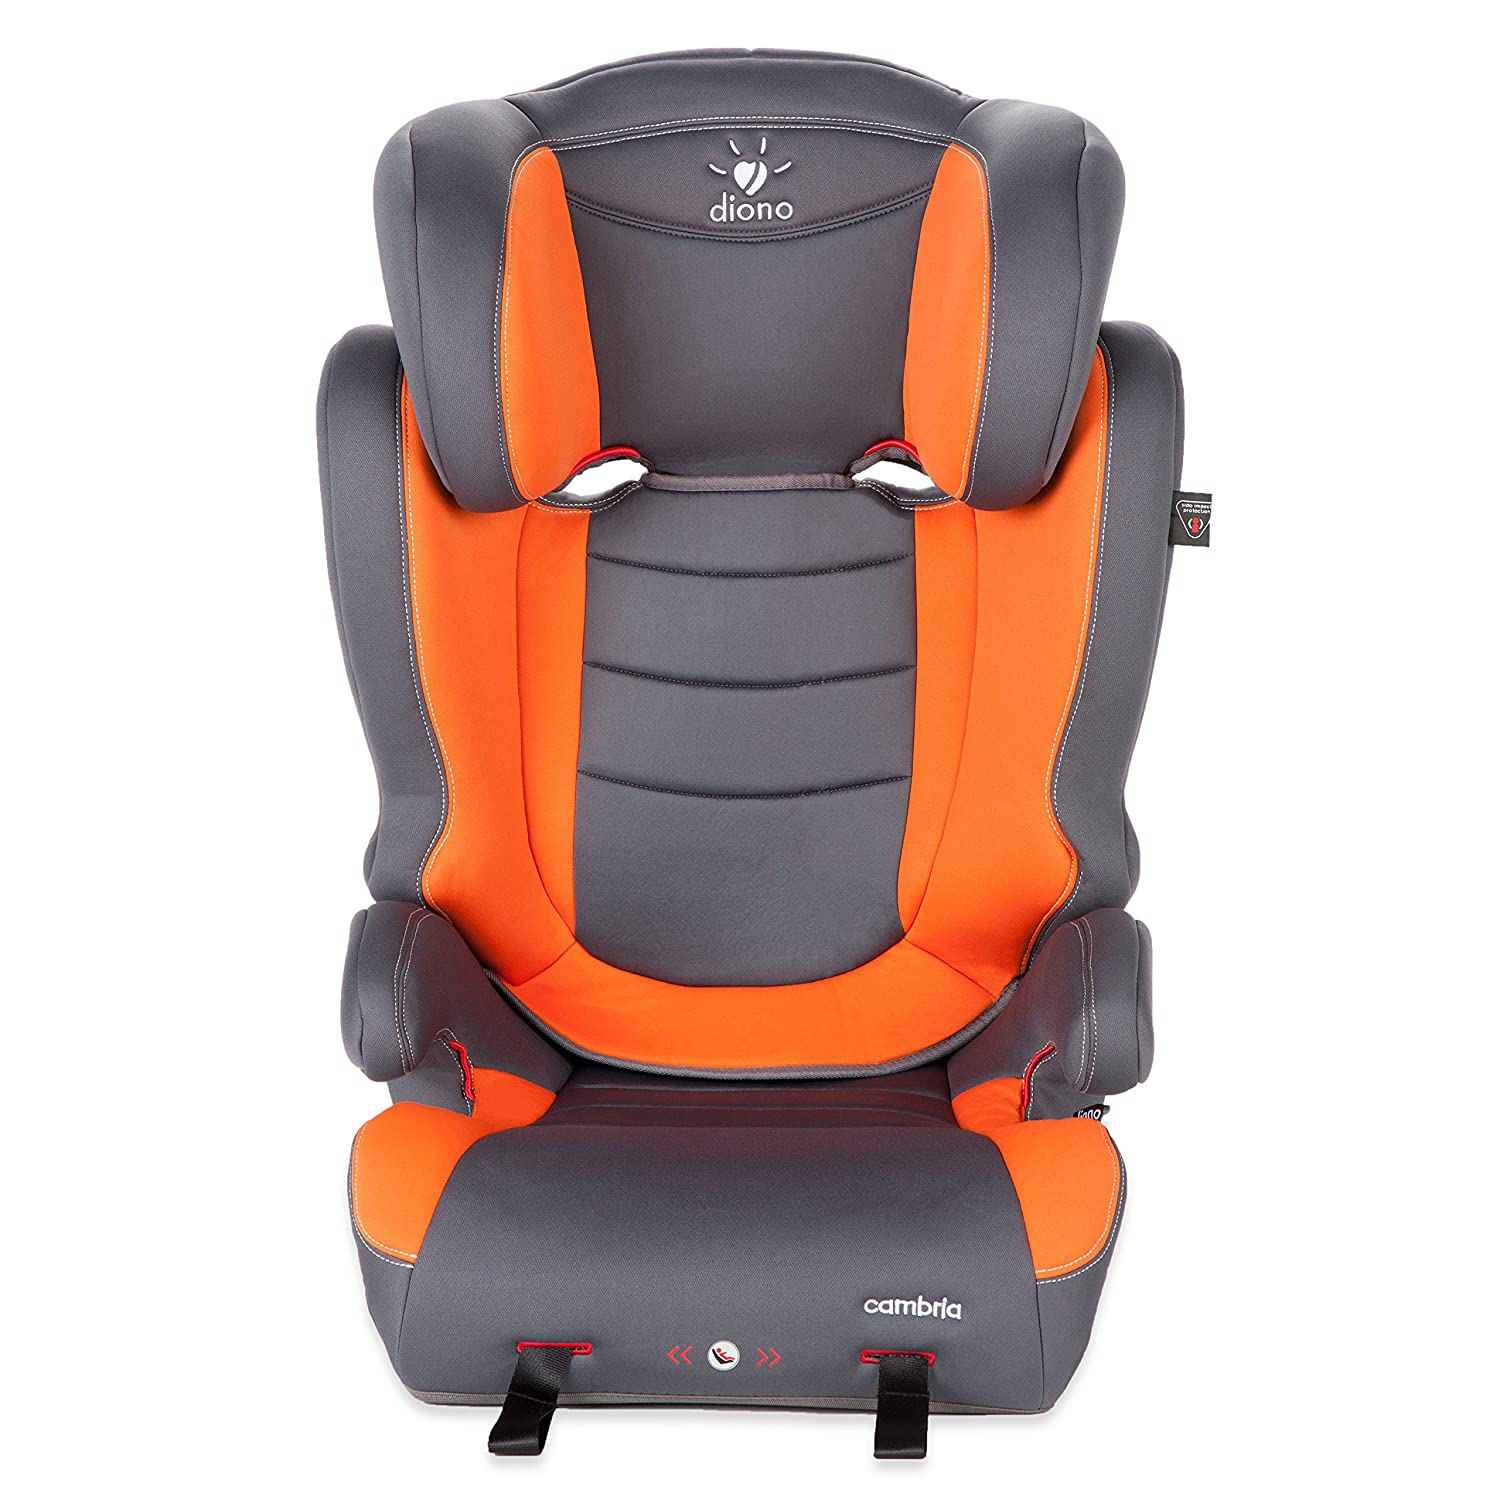 Diono Cambria High Back Booster Car Seat, Orange/Grey 31030